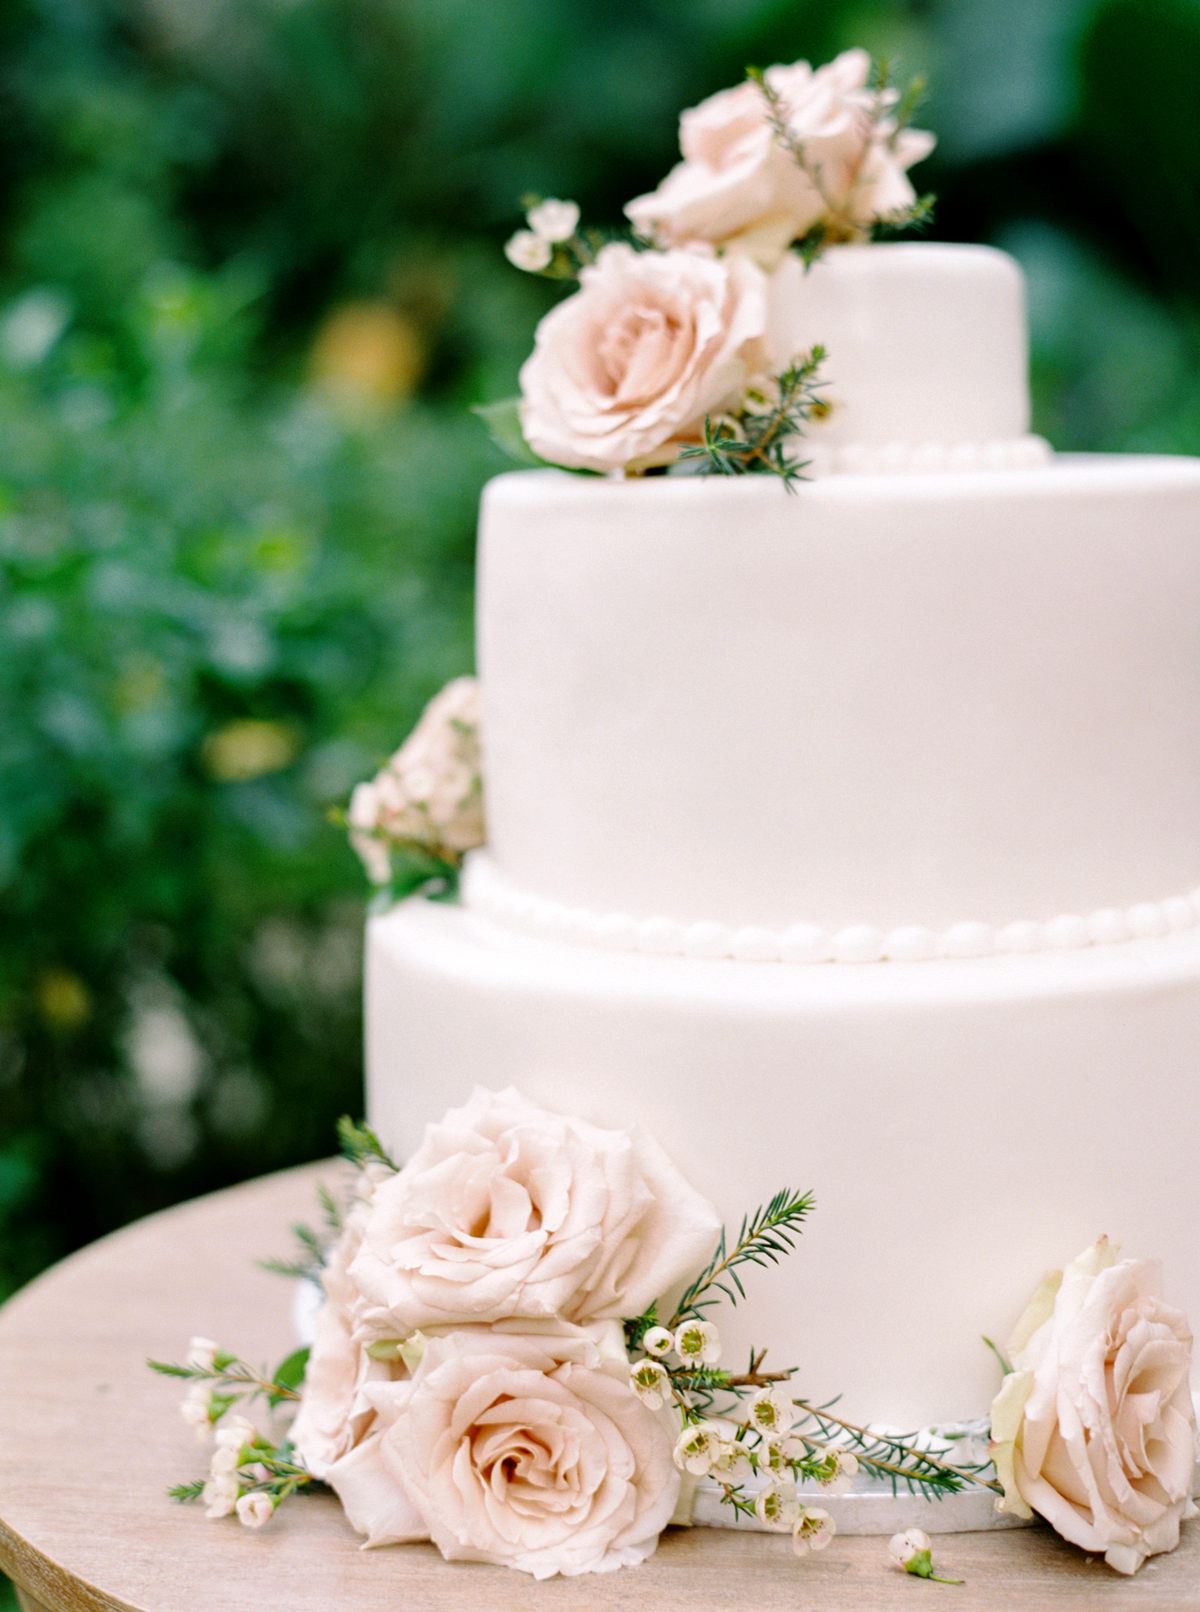 three-tier white wedding cake decorated flowers